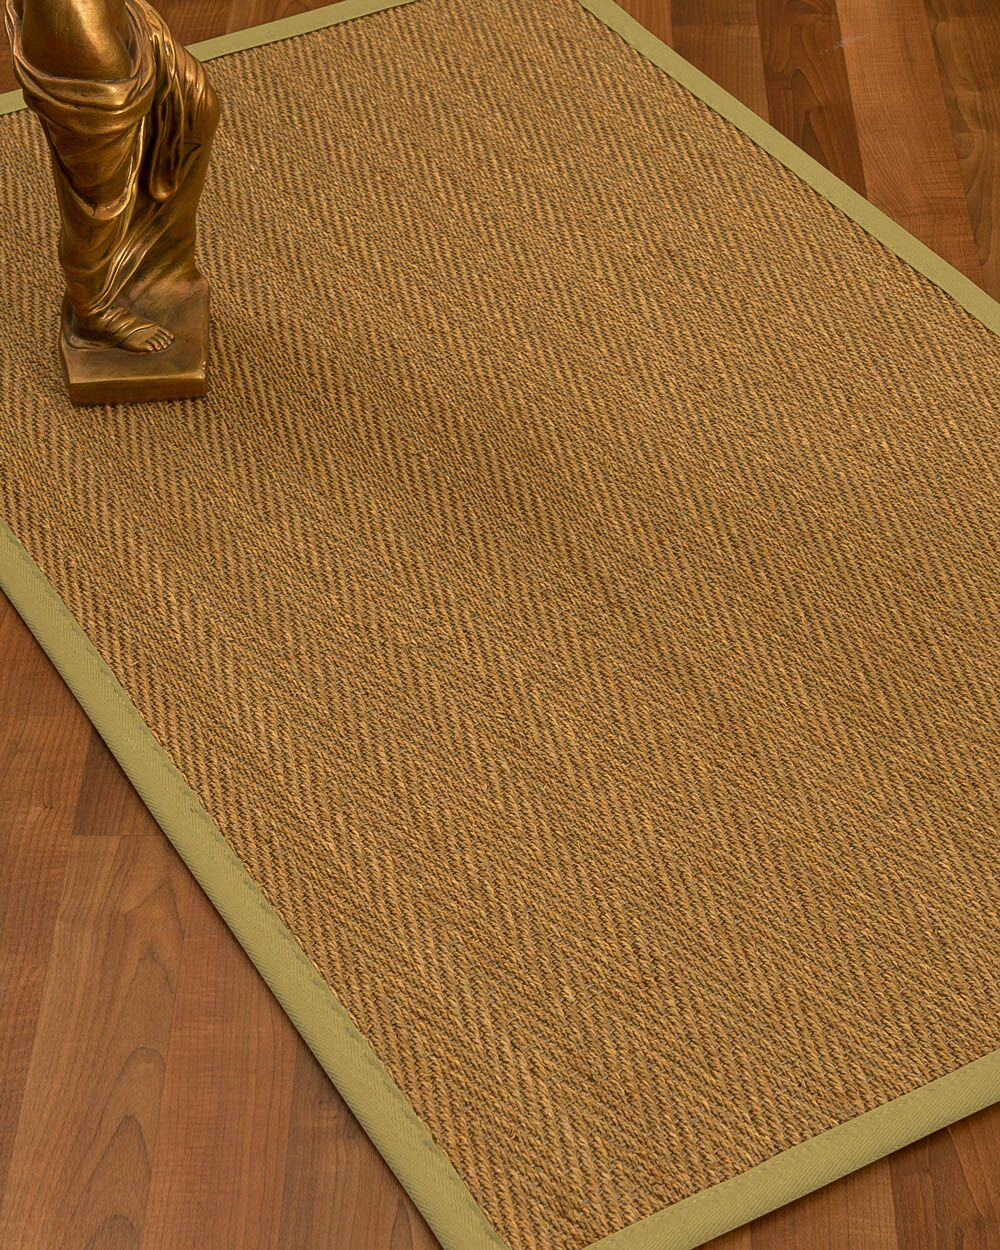 Kenner Border Hand-Woven Brown/Khaki Area Rug Rug Size: Rectangle 6' x 9', Rug Pad Included: Yes